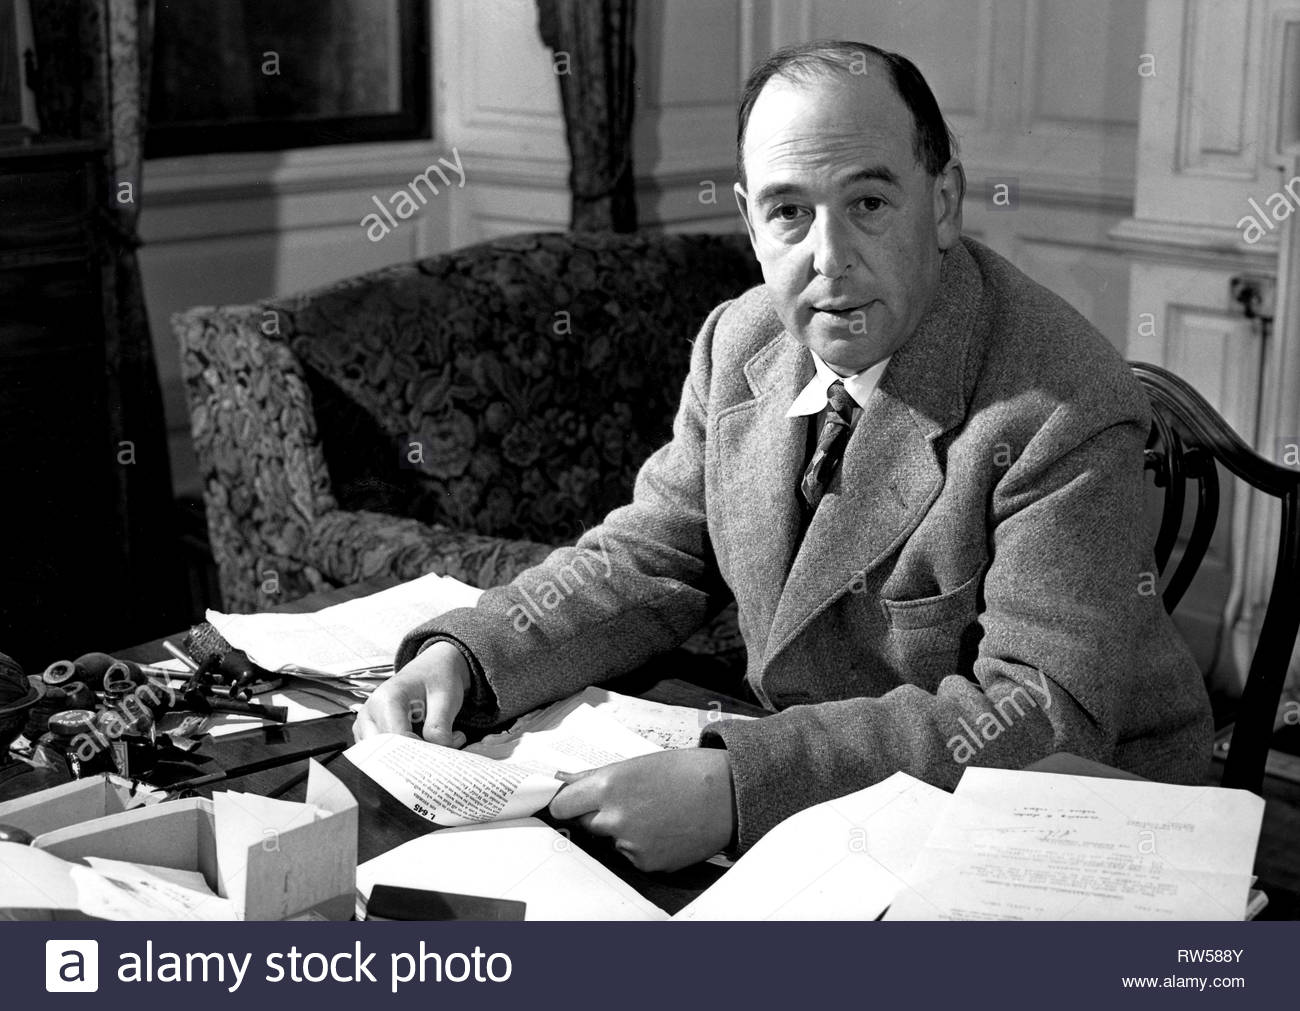 C.S. LEWIS, THE QUESTION OF GOD: SIGMUND FREUD and C.S. LEWIS, 2004 - Stock Image